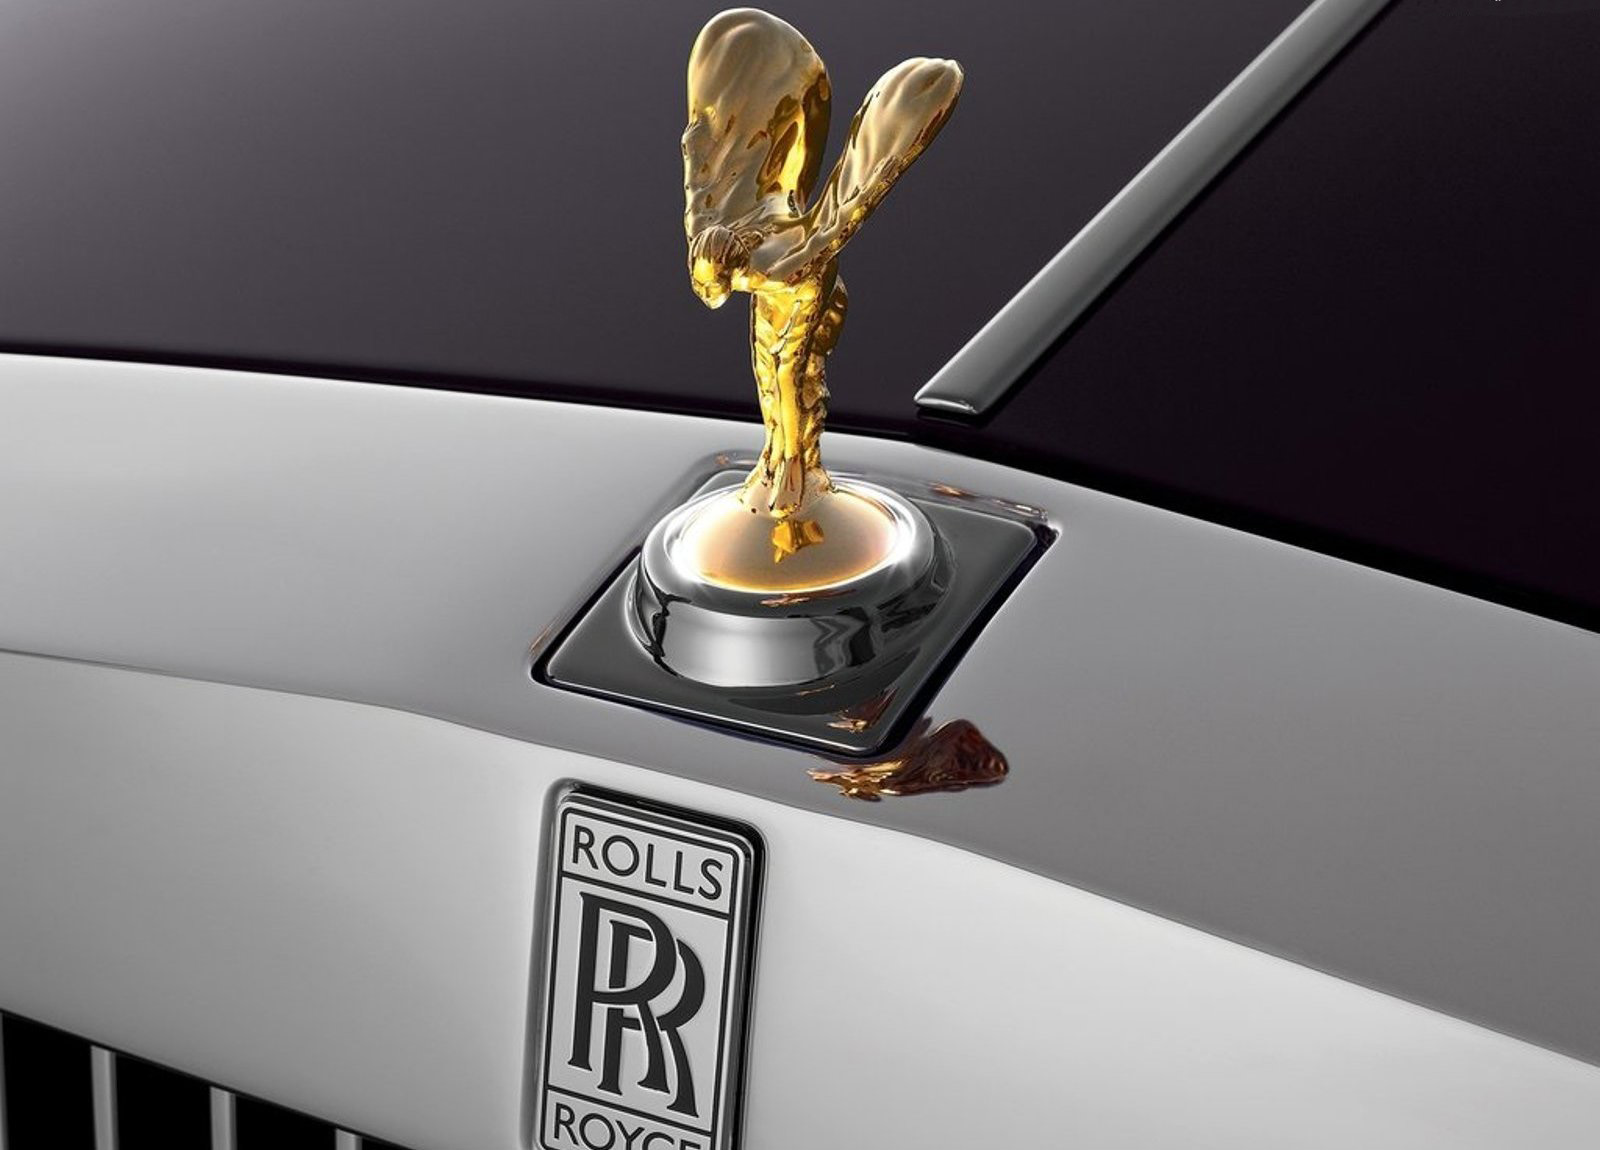 rolls royce logo. Black Bedroom Furniture Sets. Home Design Ideas